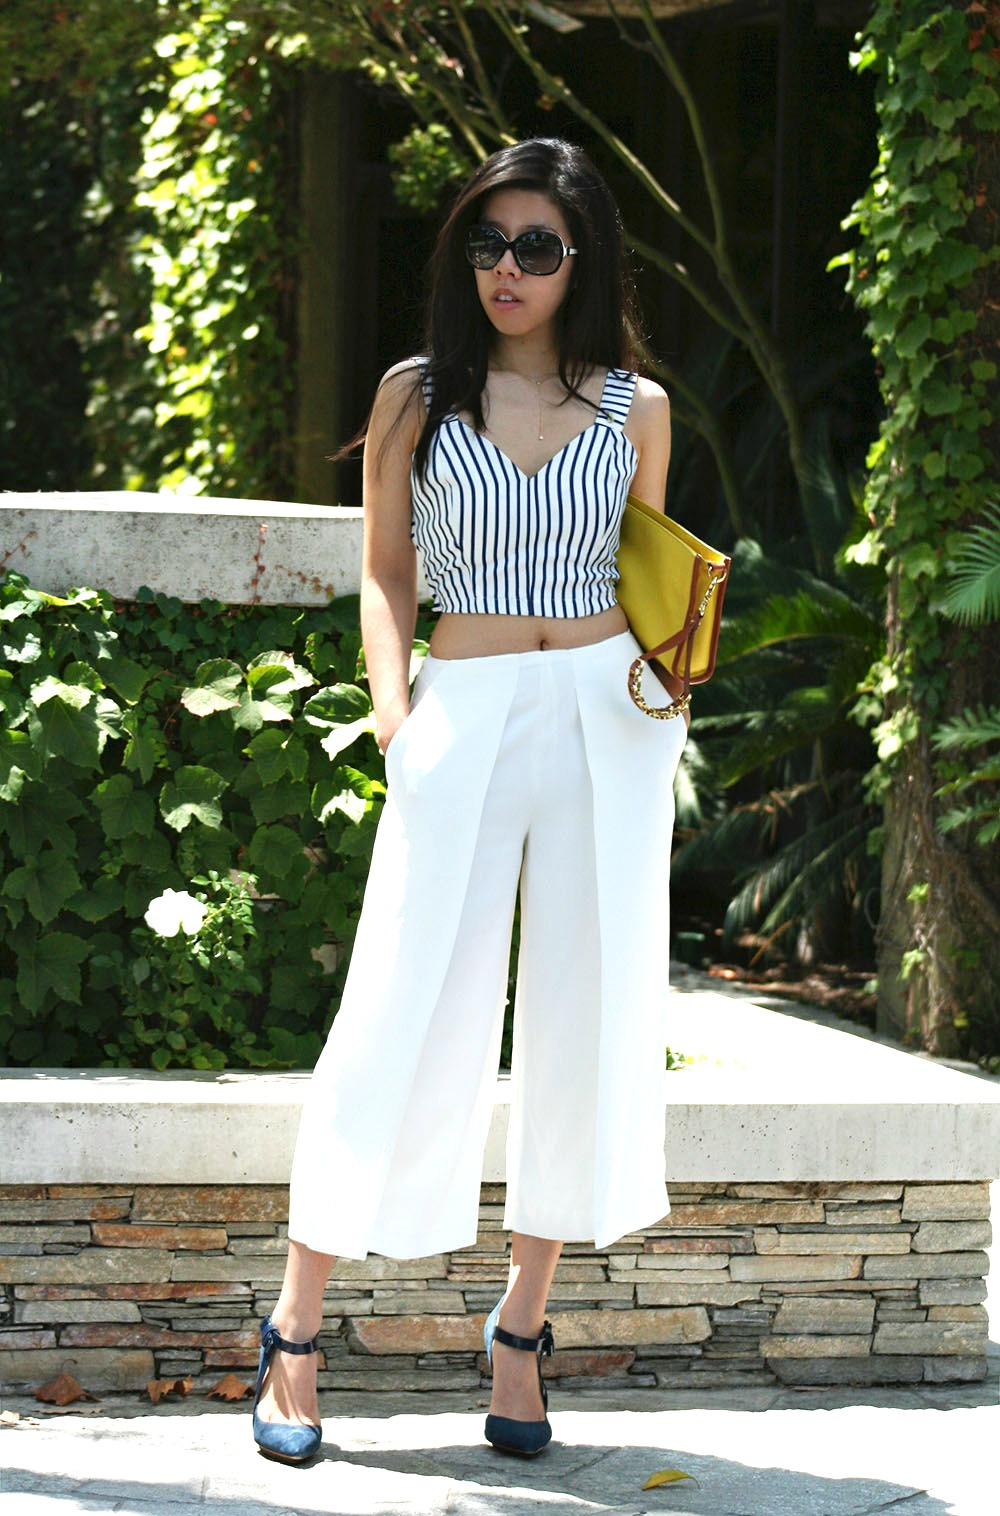 Adrienne Nguyen_Invictus_Summer Style_french Girl Style_Sailor_Sailing Outfit_Blue and White Stripes